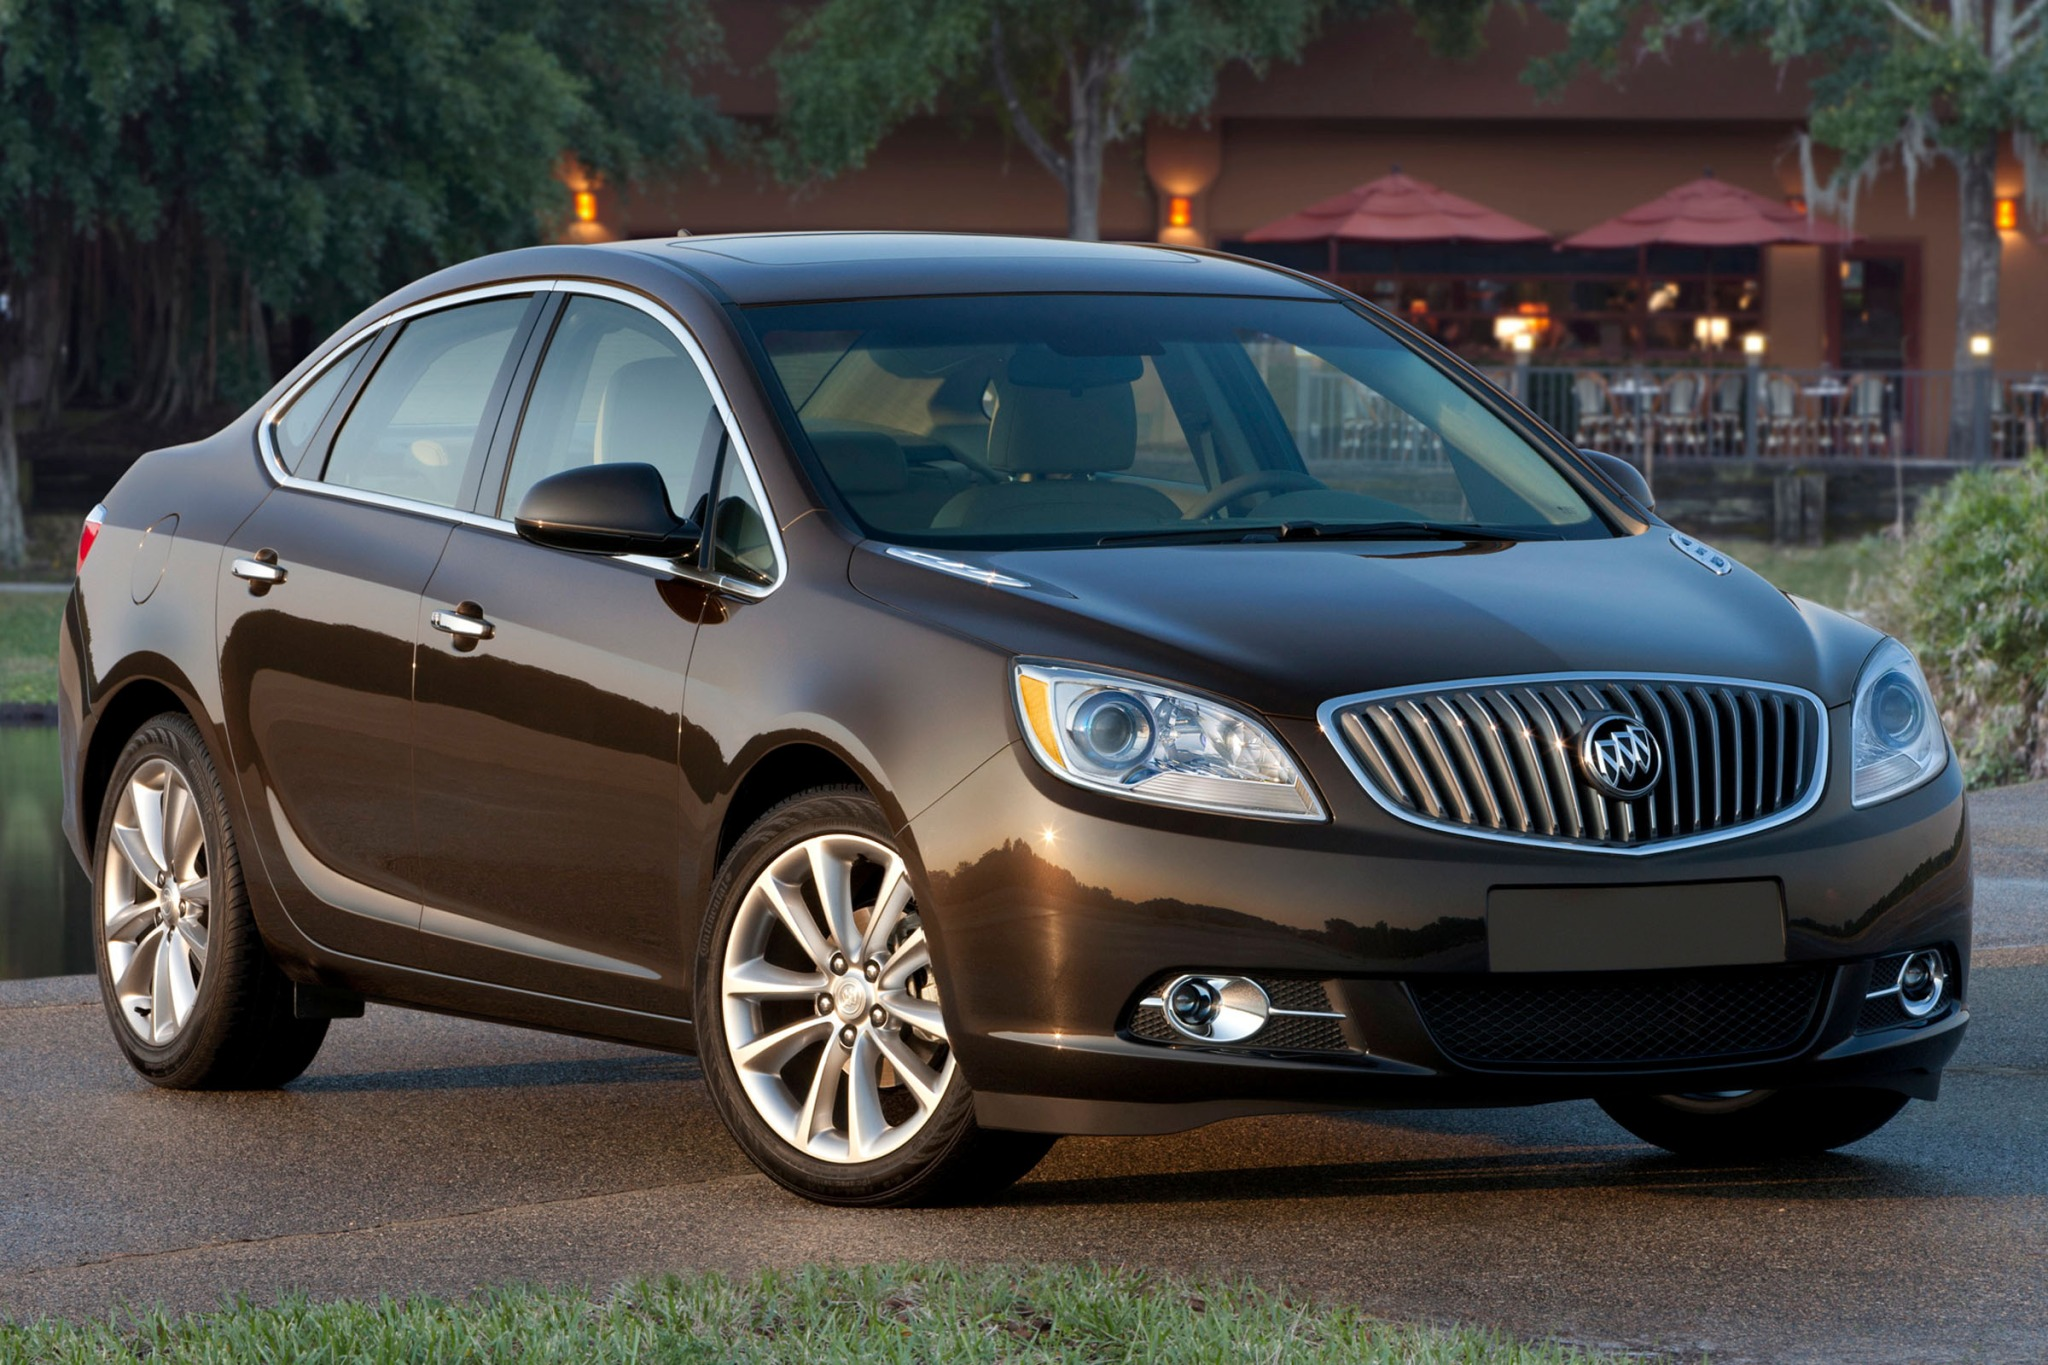 2013 Buick Verano Base Vin Number Search Autodetective